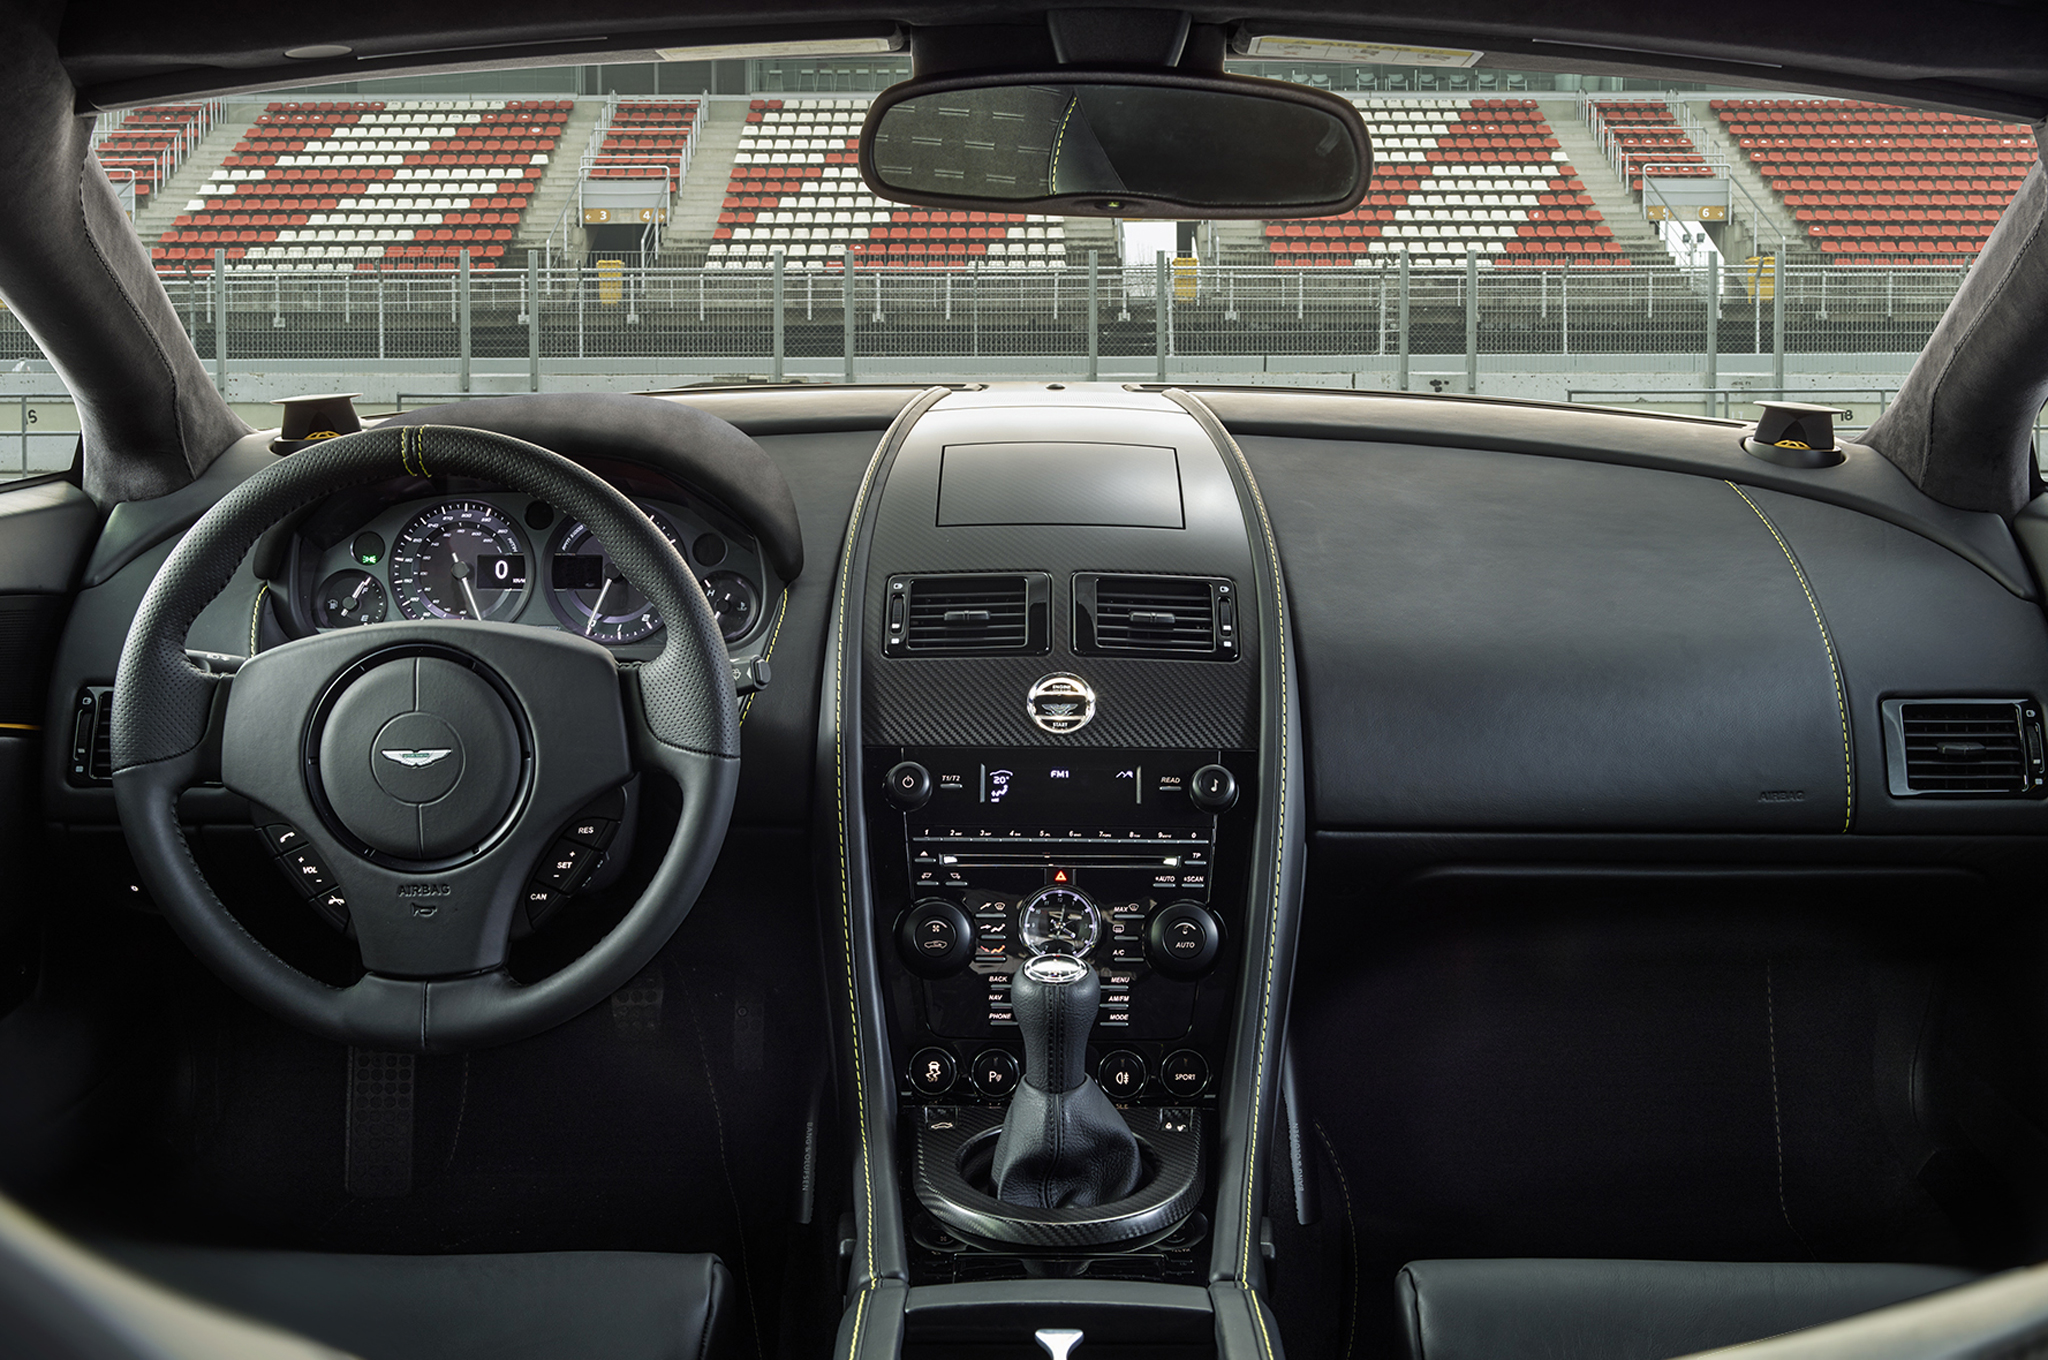 2015 Aston Martin V8 Vantage Gt Interior And Dashboard (Photo 3 of 7)